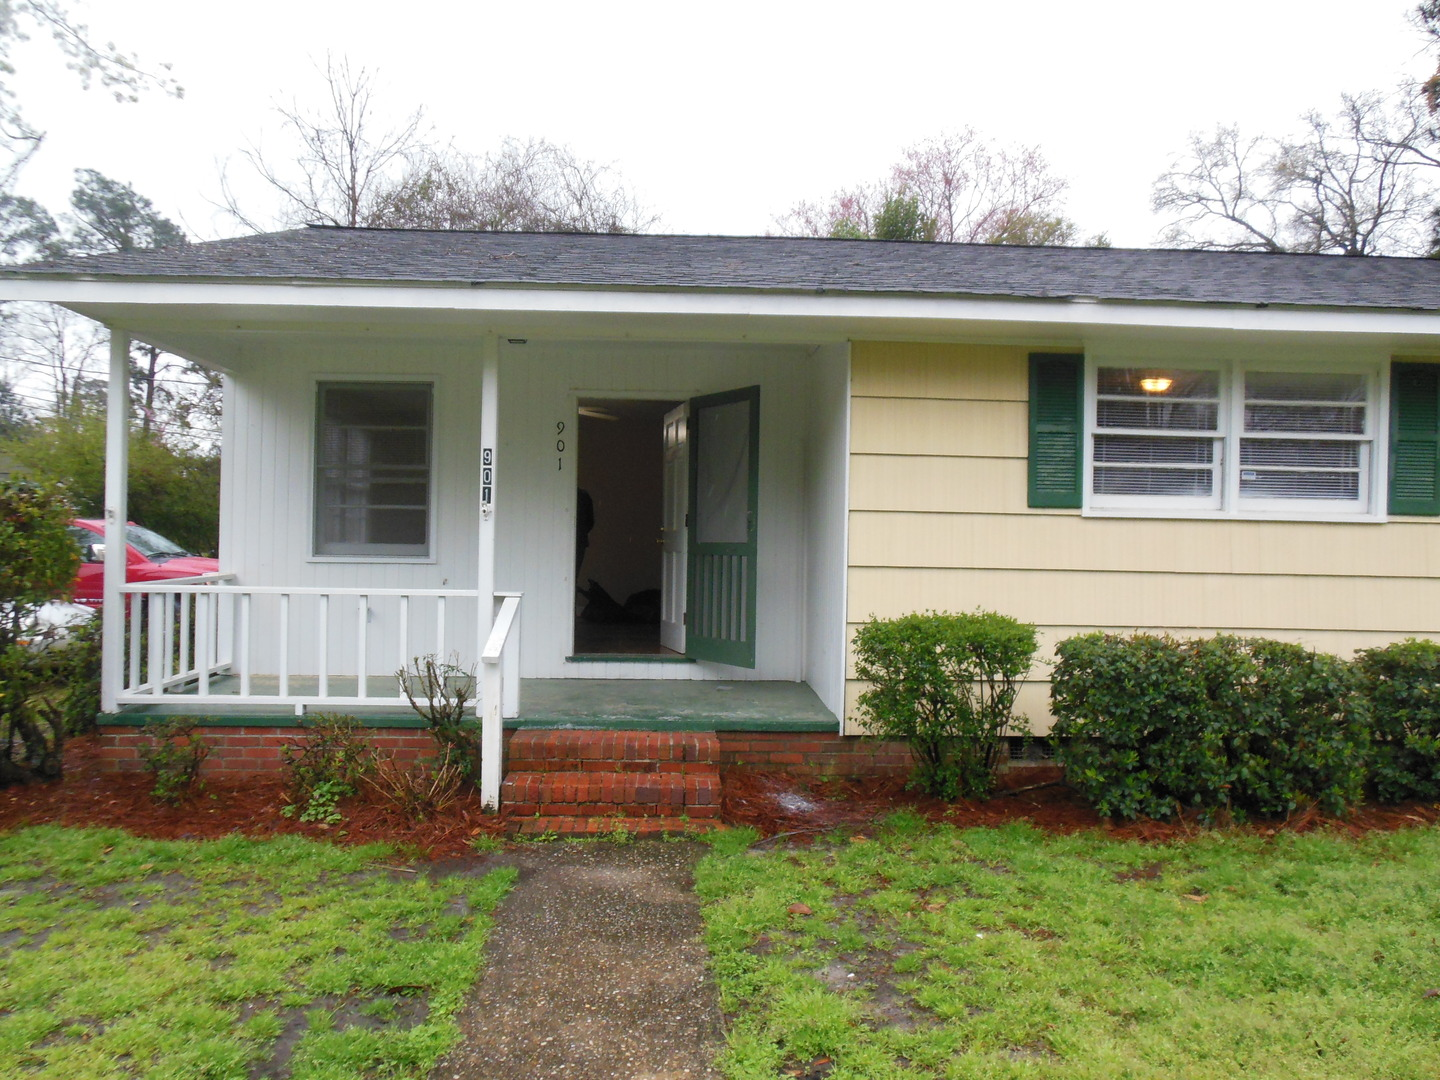 901 tenth ave key 3, conway, sc 29526